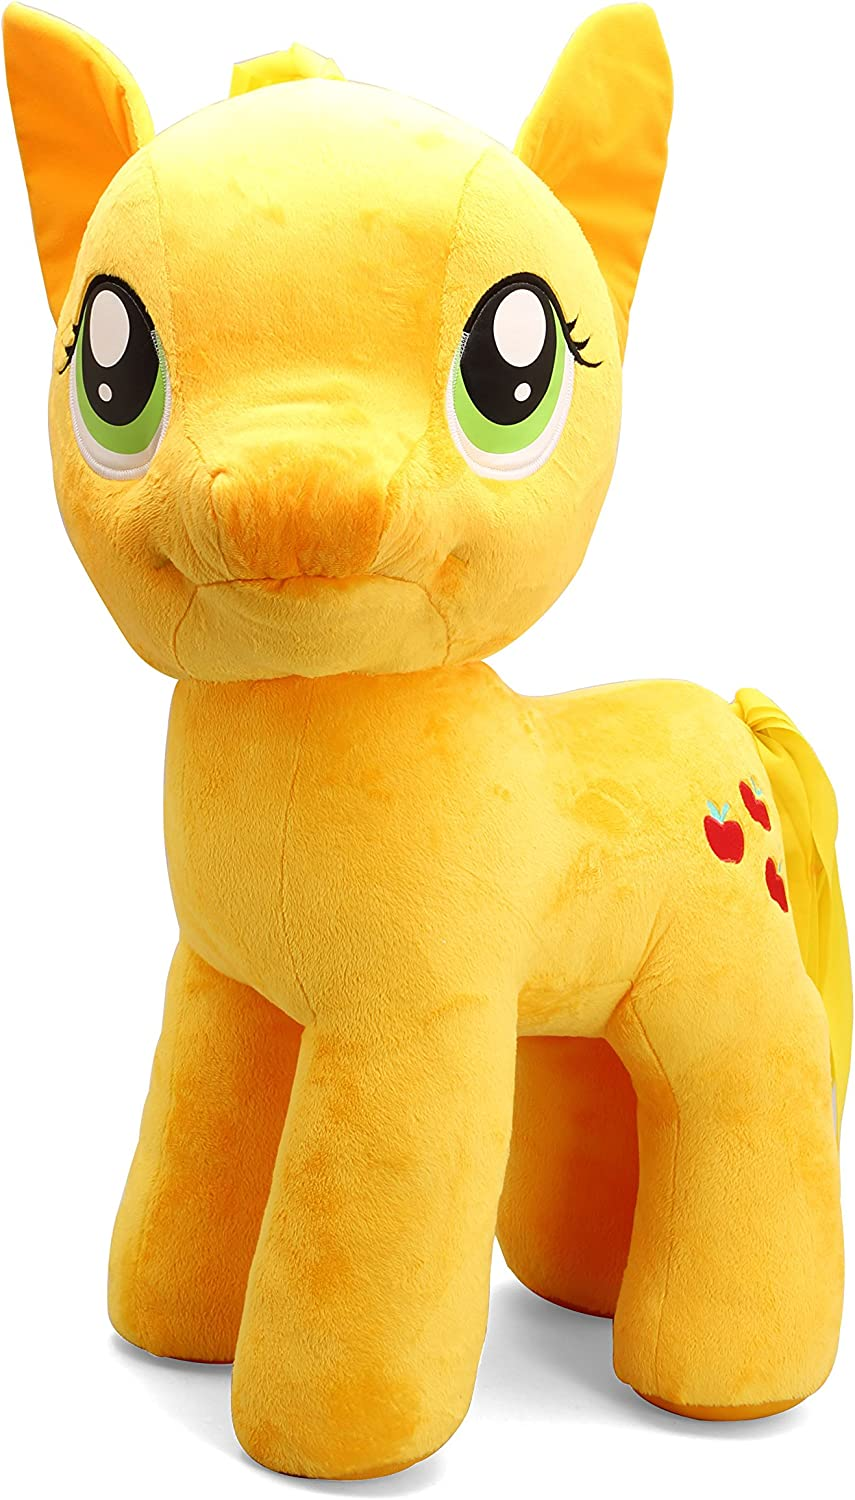 Amazon Com My Little Pony 20 Applejack Plush Toy Yellow Toys Games